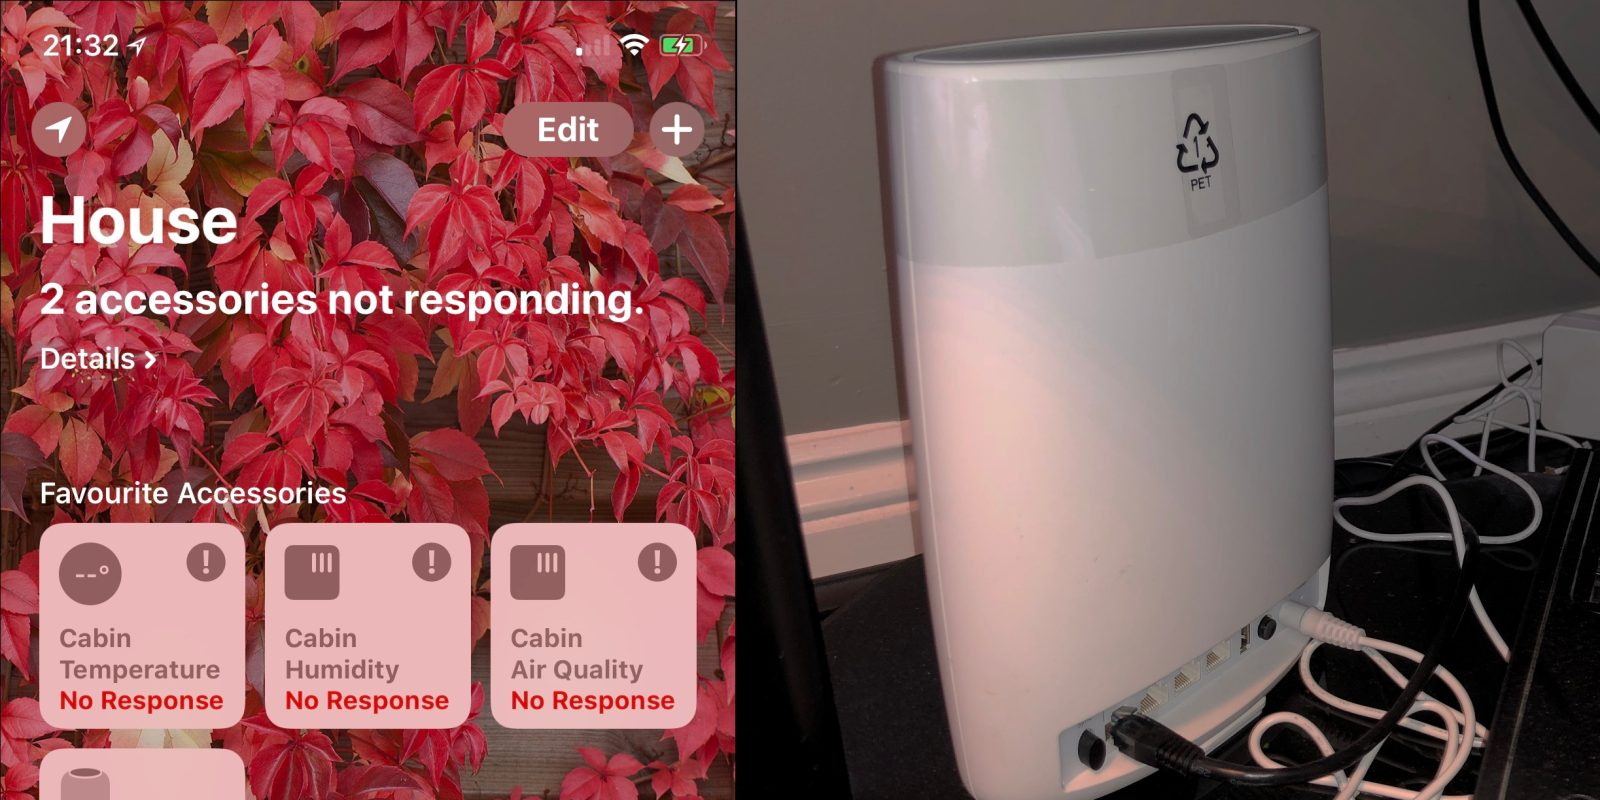 Netgear releases special firmware to address HomeKit issues